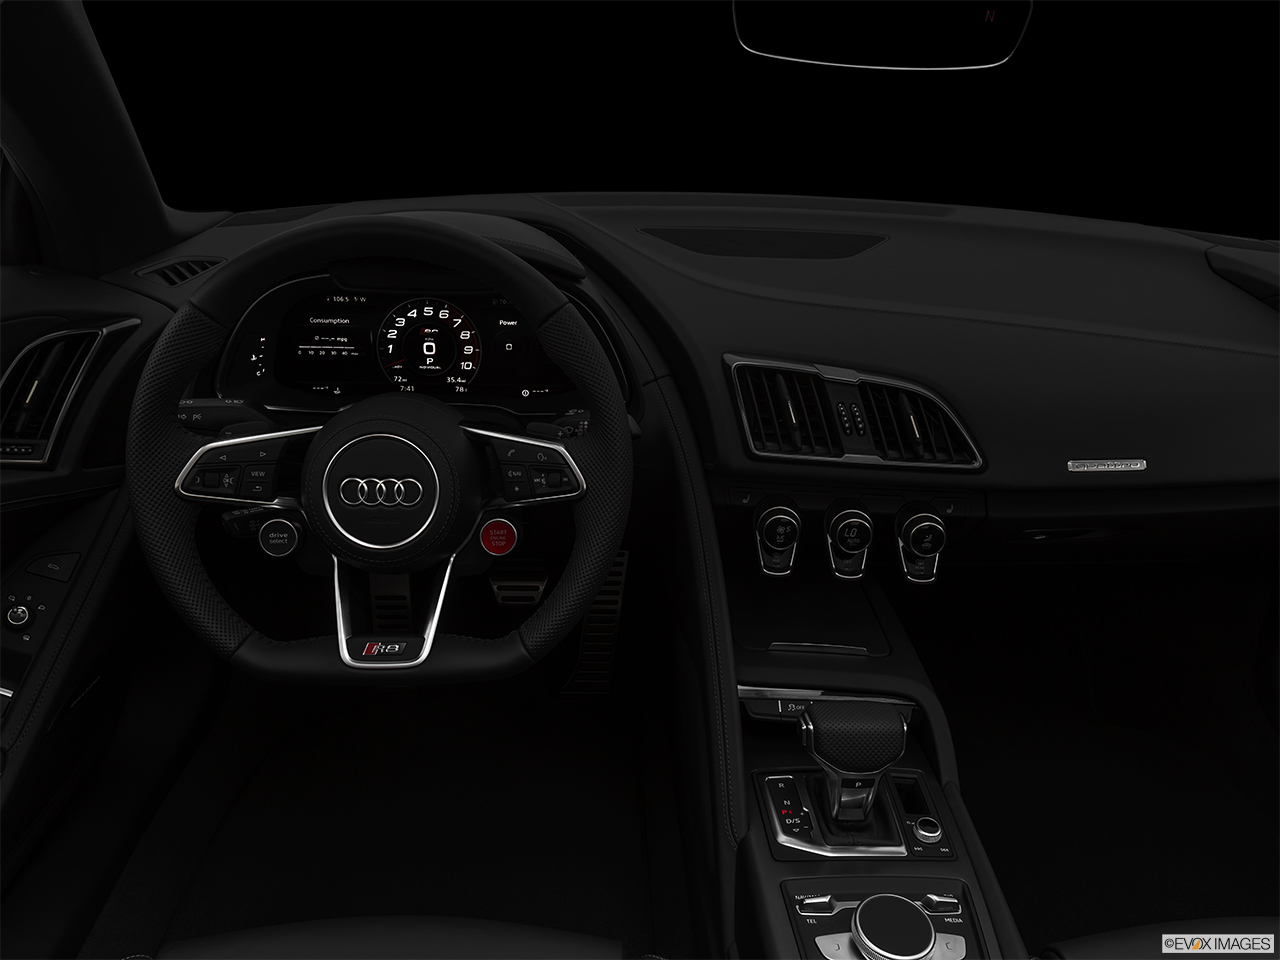 "2020 Audi R8 Spyder V10 Centered wide dash shot - ""night"" shot."